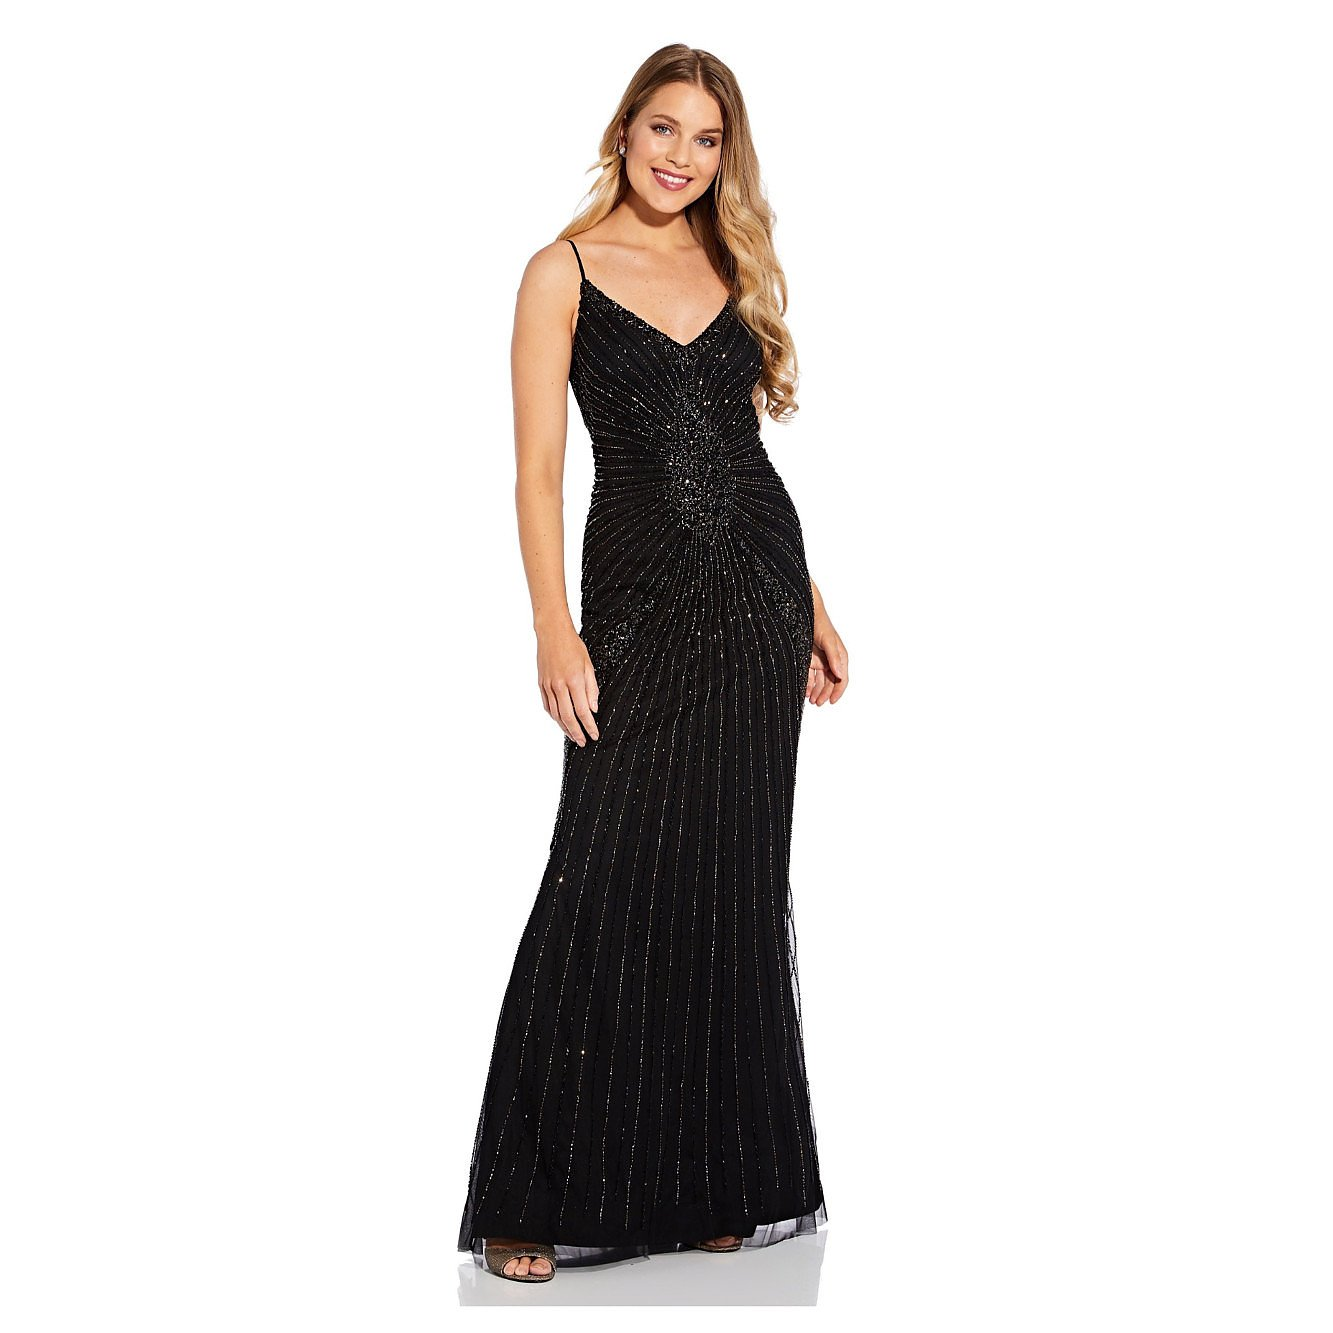 Adrianna Papell Beaded Spaghetti Strap Gown